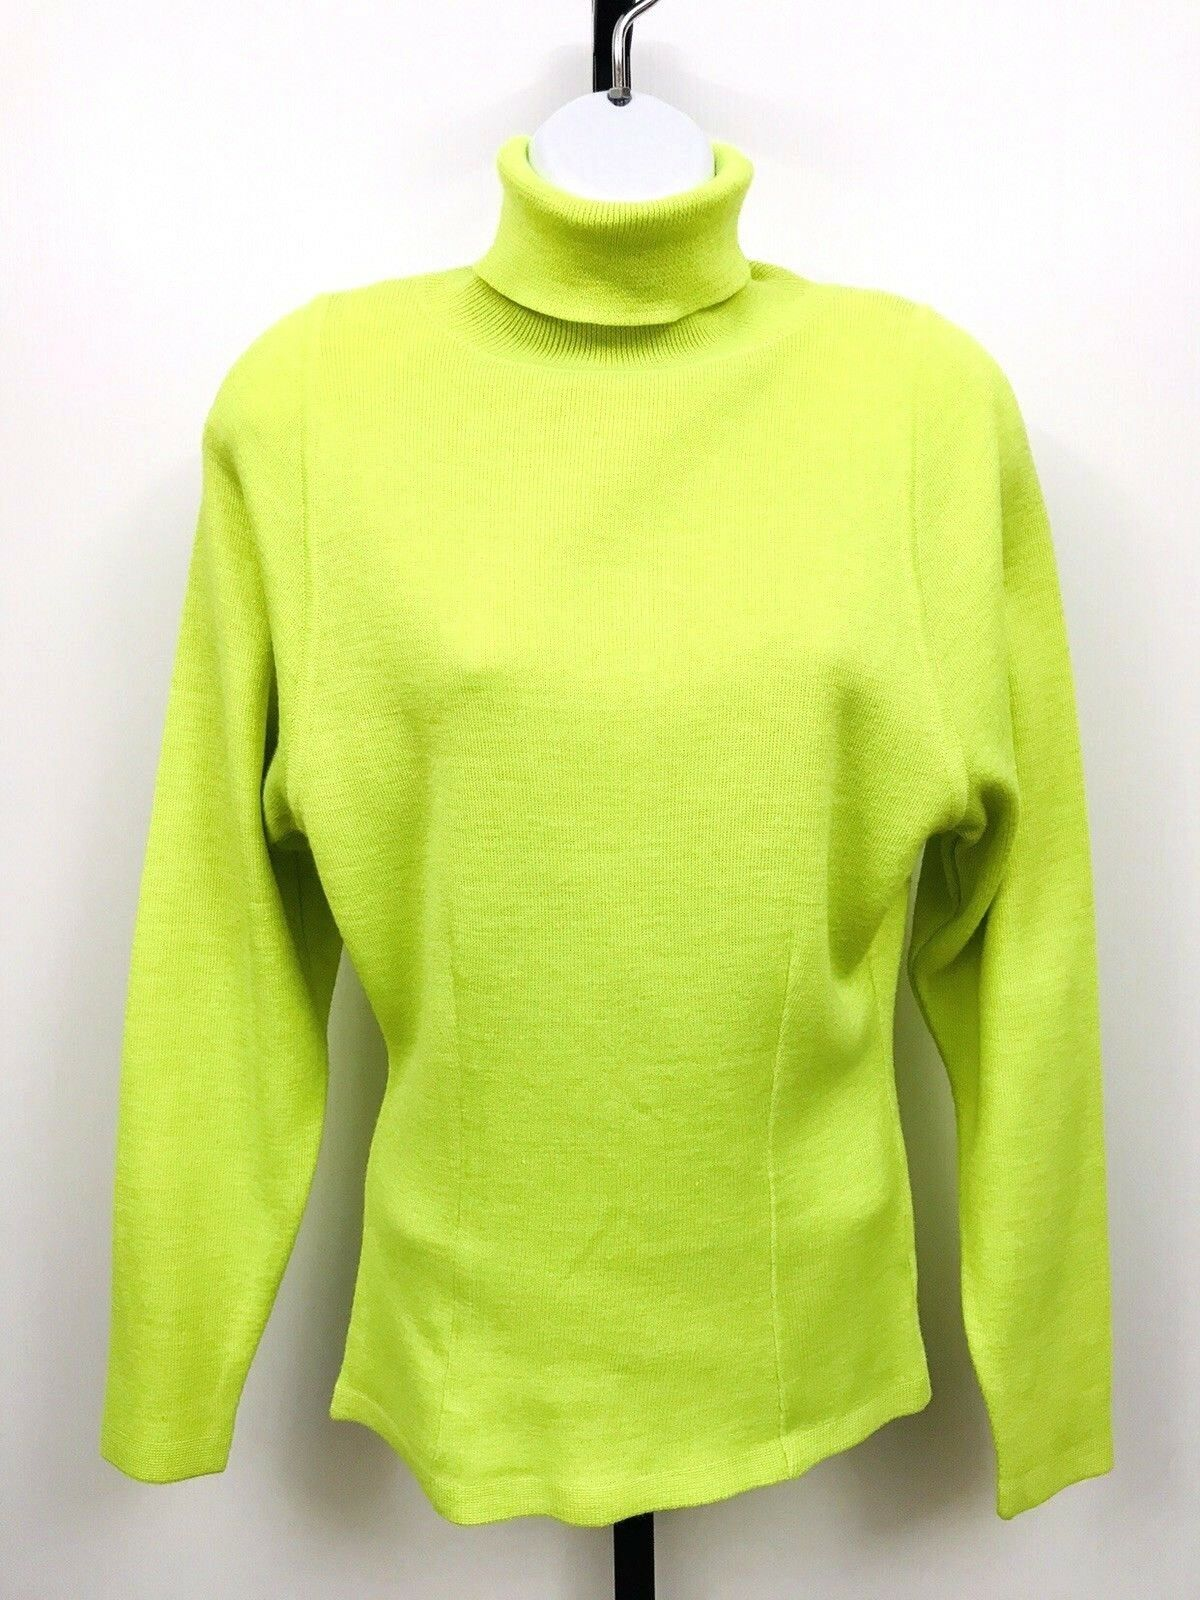 Vtg 80's Womens Ski Sweater Tyrolia by Head NEON Shoulder Pads Retro Ski Party S